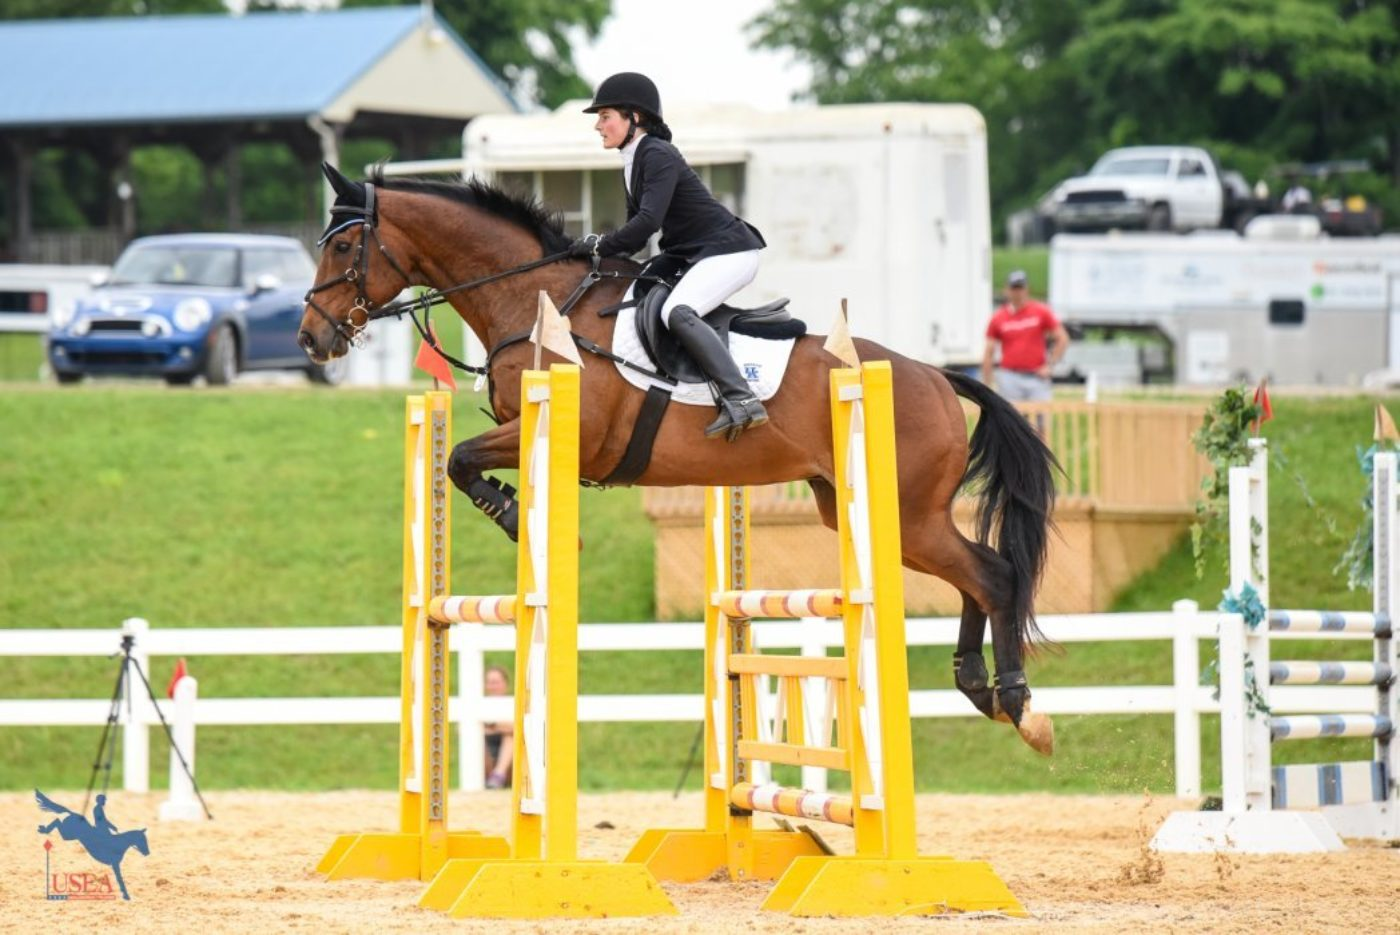 Mia Fox and Sport Tracker completing their first Preliminary level event as part of the University of Kentucky team. USEA/Jessica Duffy Photo.